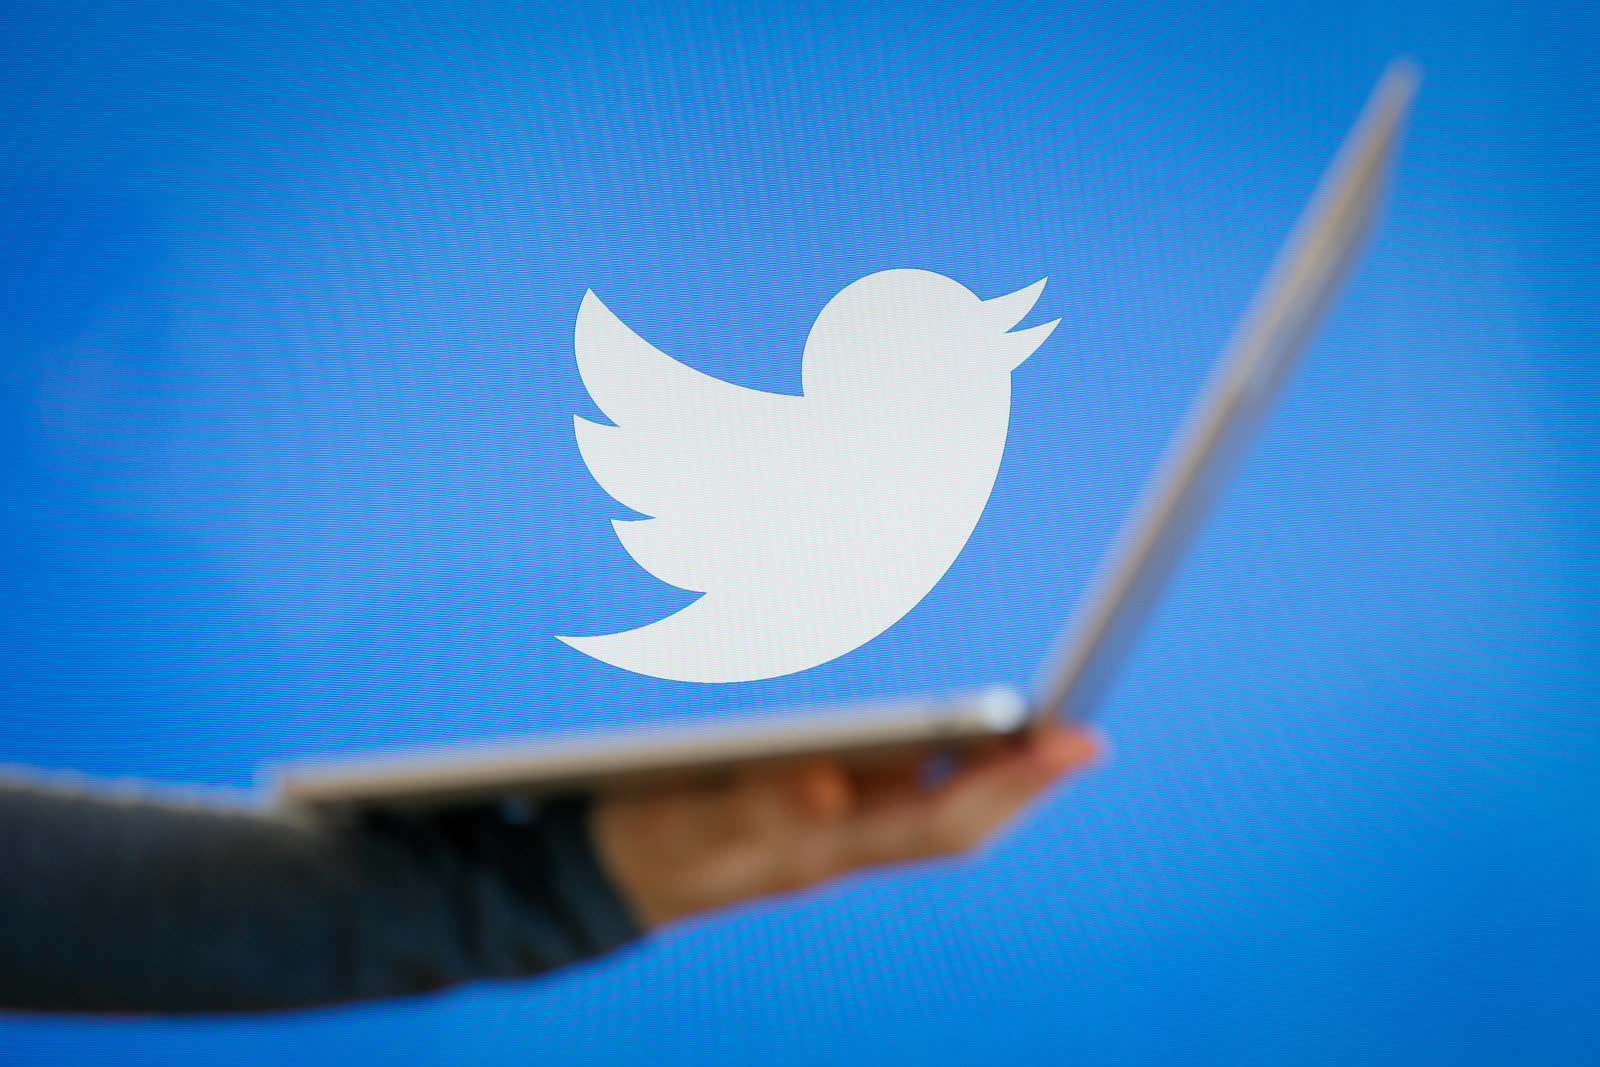 Twitter bans accounts related to Hamas and Hezbollah